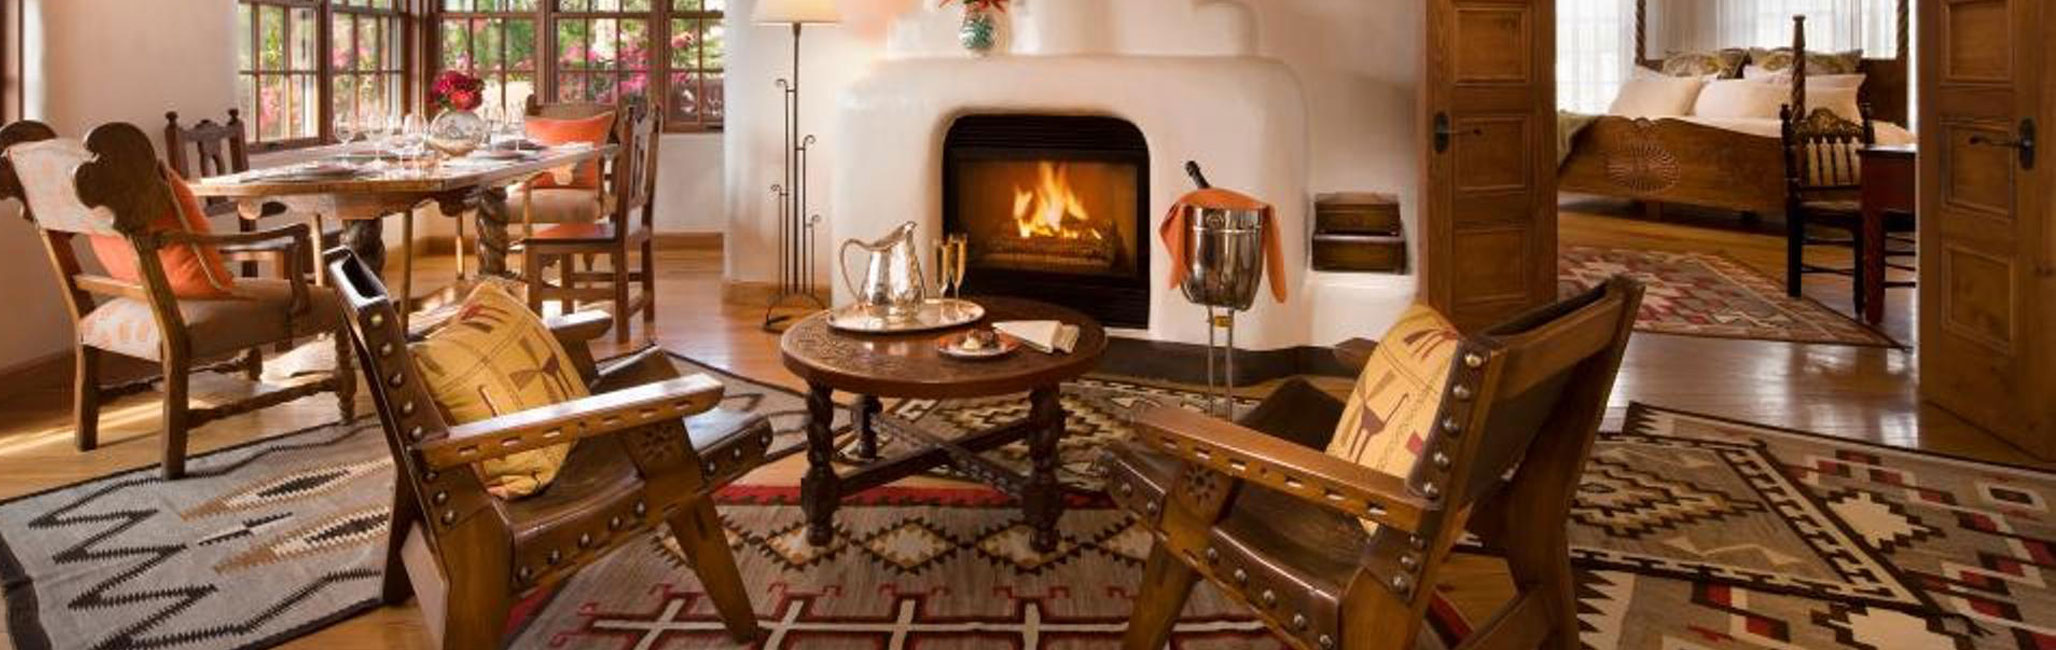 Sedona Concierge service for accommodations while in Sedona